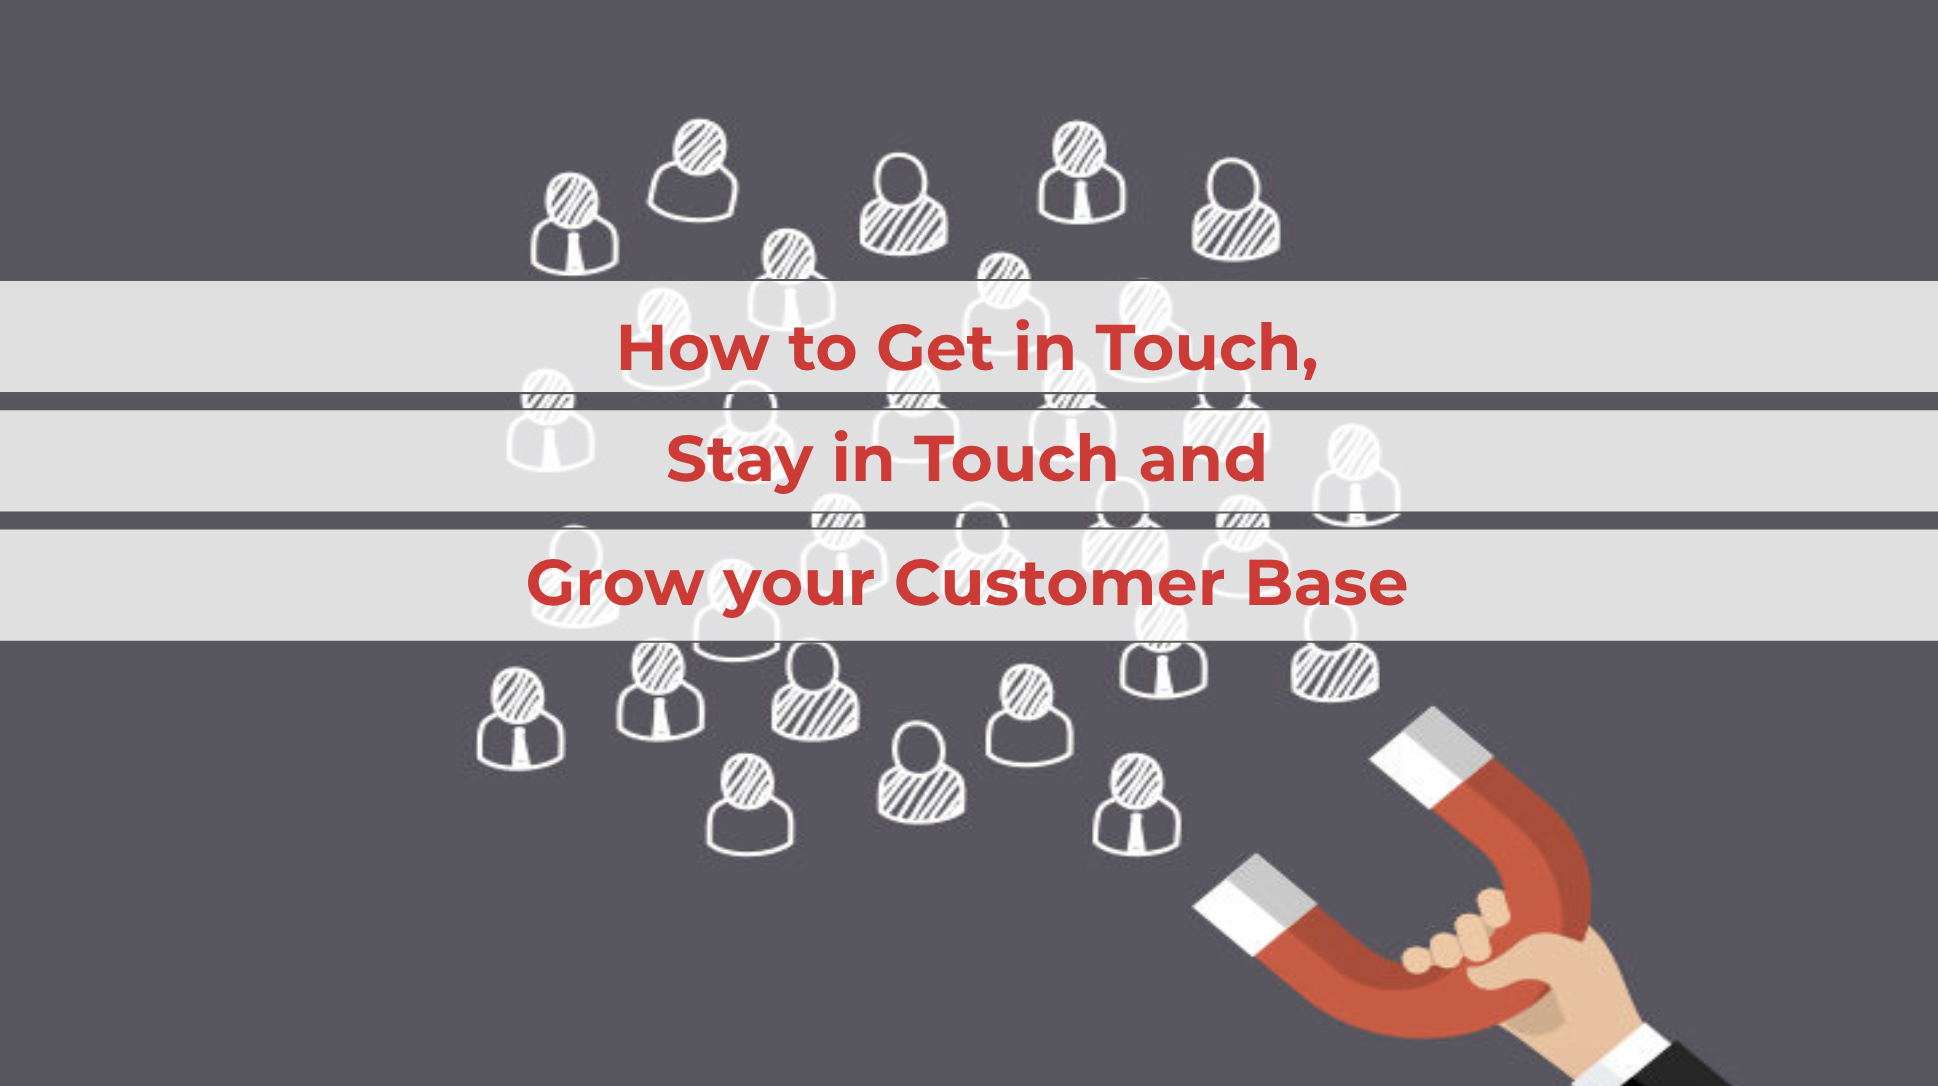 How to Get in Touch, Stay in Touch and Grow your Customer Base